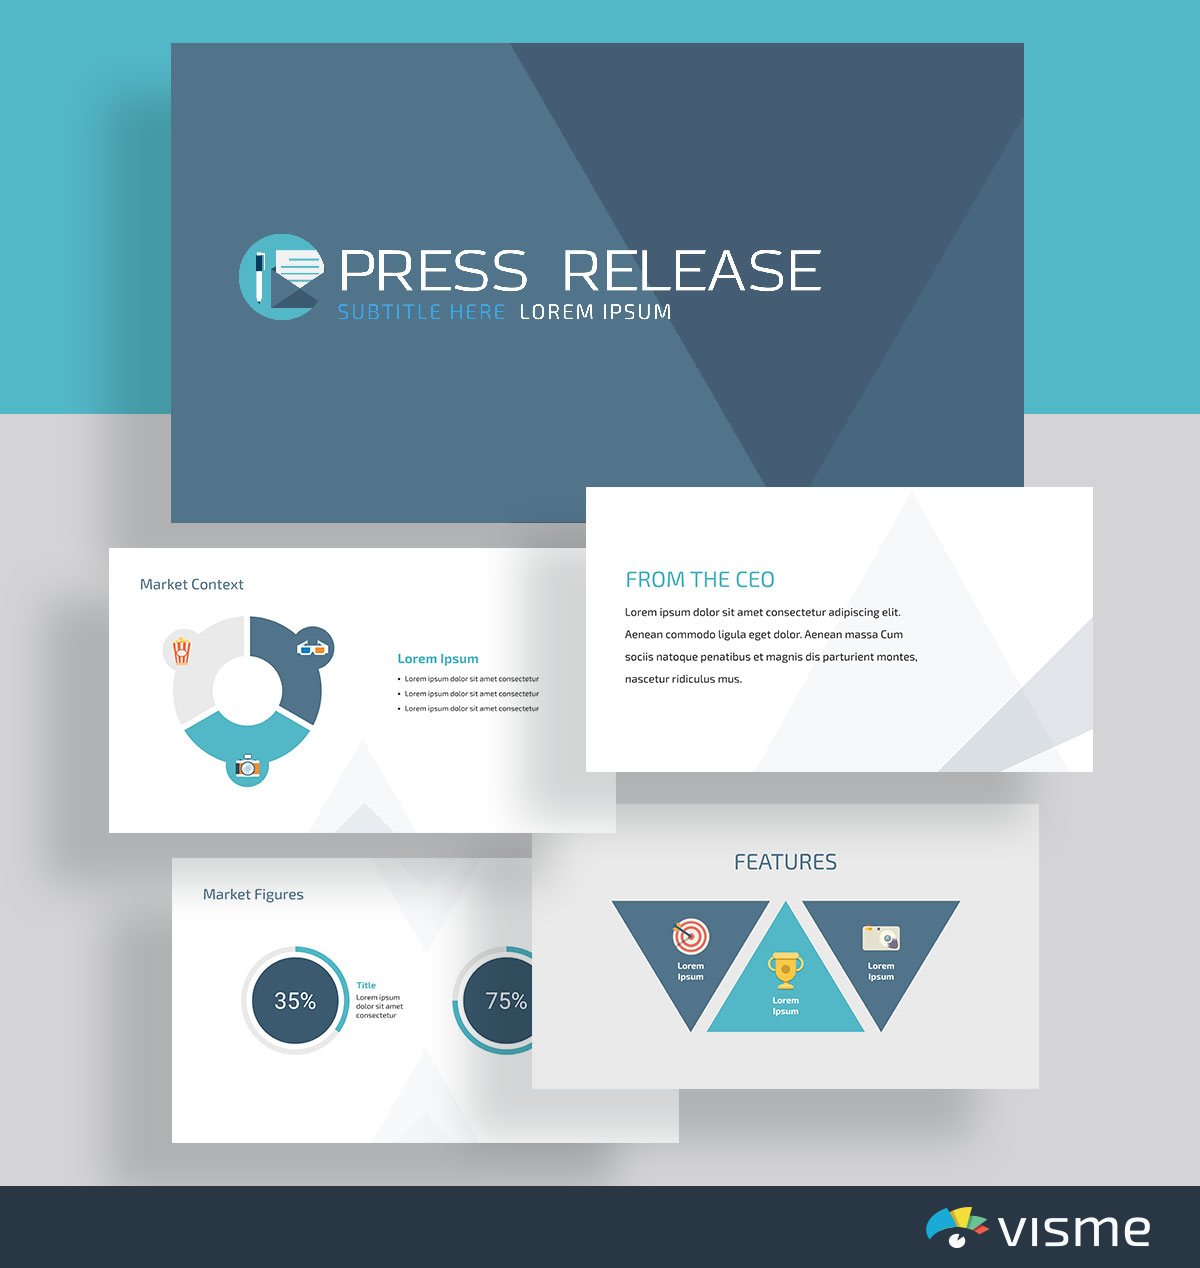 presentation slides - press release template visme